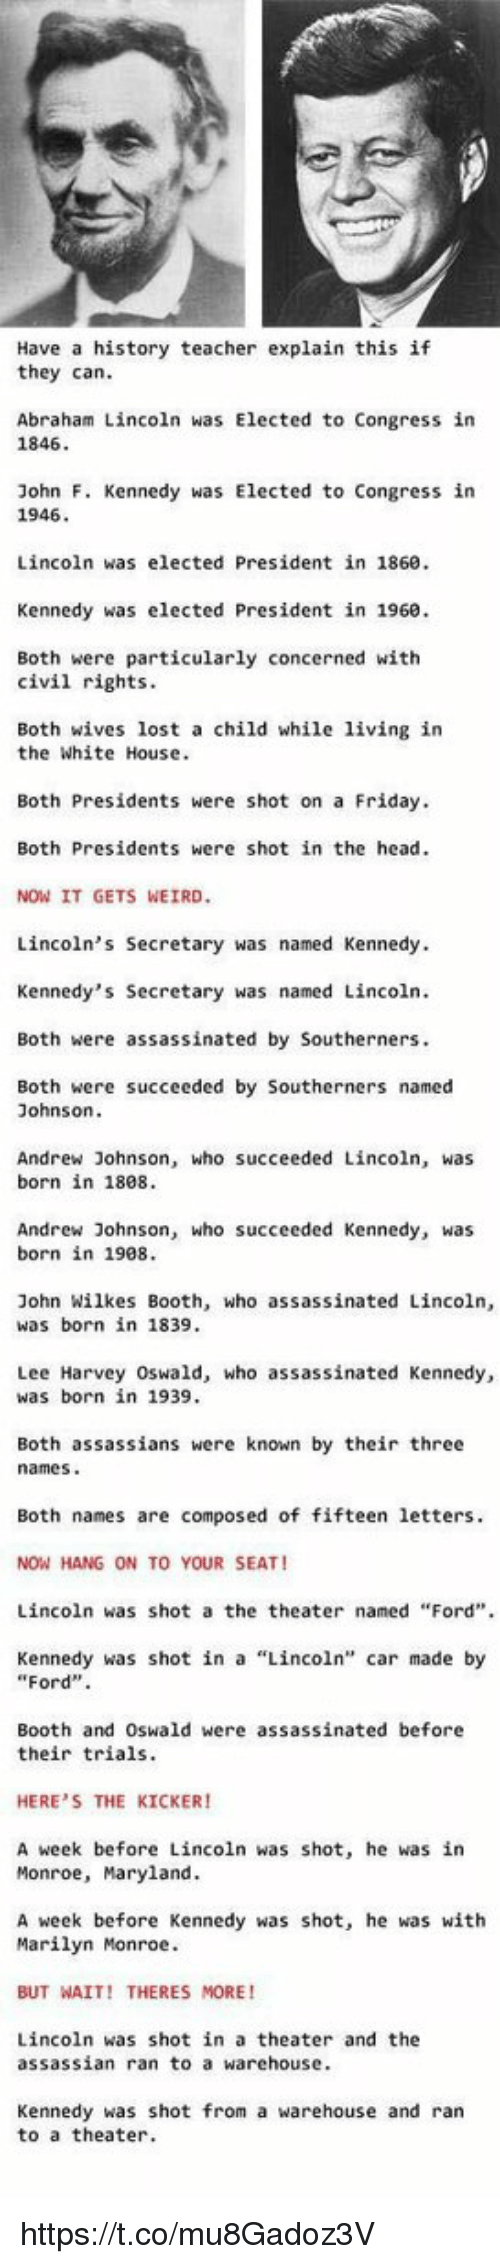 """Lee Harvey Oswald: Have a history teacher explain this if  they can  Abraham Lincoln was Elected to Congress in  1846  John F. Kennedy was Elected to Congress in  1946  Lincoln was elected President in 1860  Kennedy was elected President in 1960  Both were particularly concerned with  civil rights  Both wives lost a child while living in  the White House  Both Presidents were shot on a Friday  Both Presidents were shot in the head  NOW IT GETS WEIRD  Lincoln's Secretary was named Kennedy  Kennedy's Secretary was named Lincoln  Both were assassinated by Southerners  Both were succeeded by Southerners named  Johnson  Andrew Johnson, who succeeded Lincoln, was  born in 1808  Andrew Johnson, who succeeded Kennedy, was  born in 1908  John Wilkes Booth, who assassinated Lincoln,  was born in 1839  Lee Harvey Oswald, who assassinated Kennedy,  was born in 1939  Both assassians were known by their three  names  Both names are composed of fifteen letters  NOW HANG ON TO YOUR SEAT  Lincoln was shot a the theater named """"Ford""""  Kennedy was shot in a """"Lincoln"""" car made by  """"Ford"""".  Booth and Oswald were assassinated before  their trials  HERE'S THE KICKER!  A week before Lincoln was shot, he was in  Monroe, Maryland  A week before Kennedy was shot, he was with  Marilyn Monroe  BUT WAIT! THERES MORE!  Lincoln was shot in a theater and the  assassian ran to a warehouse  Kennedy was shot from a warehouse and ran  to a theater https://t.co/mu8Gadoz3V"""